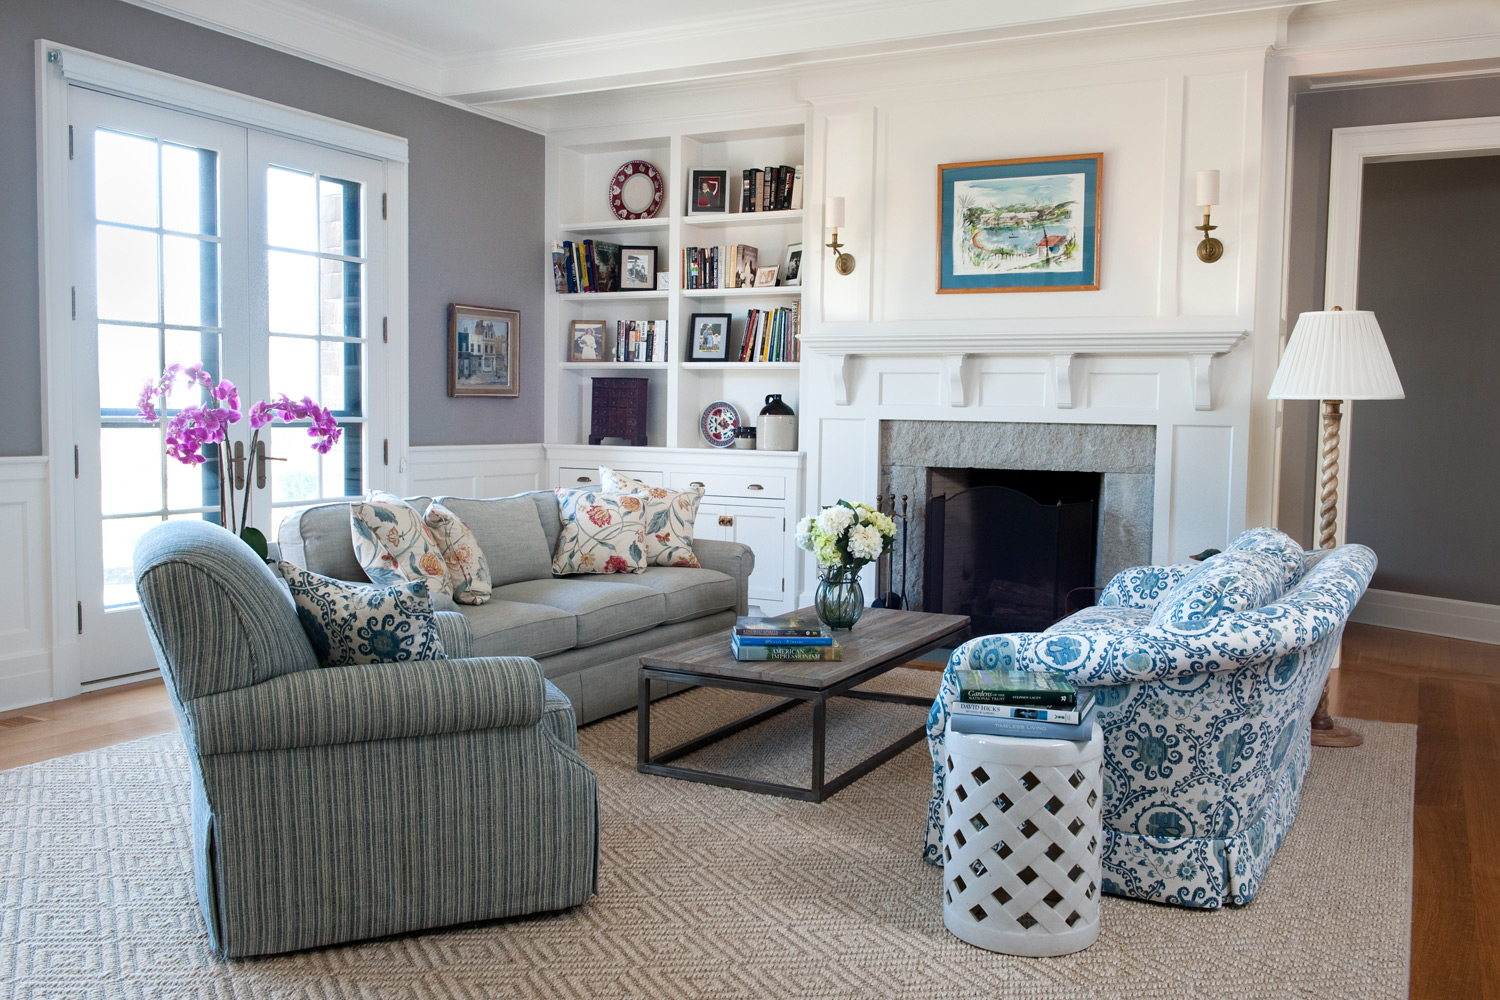 Coastal new england style home decoration club for Living room decor styles